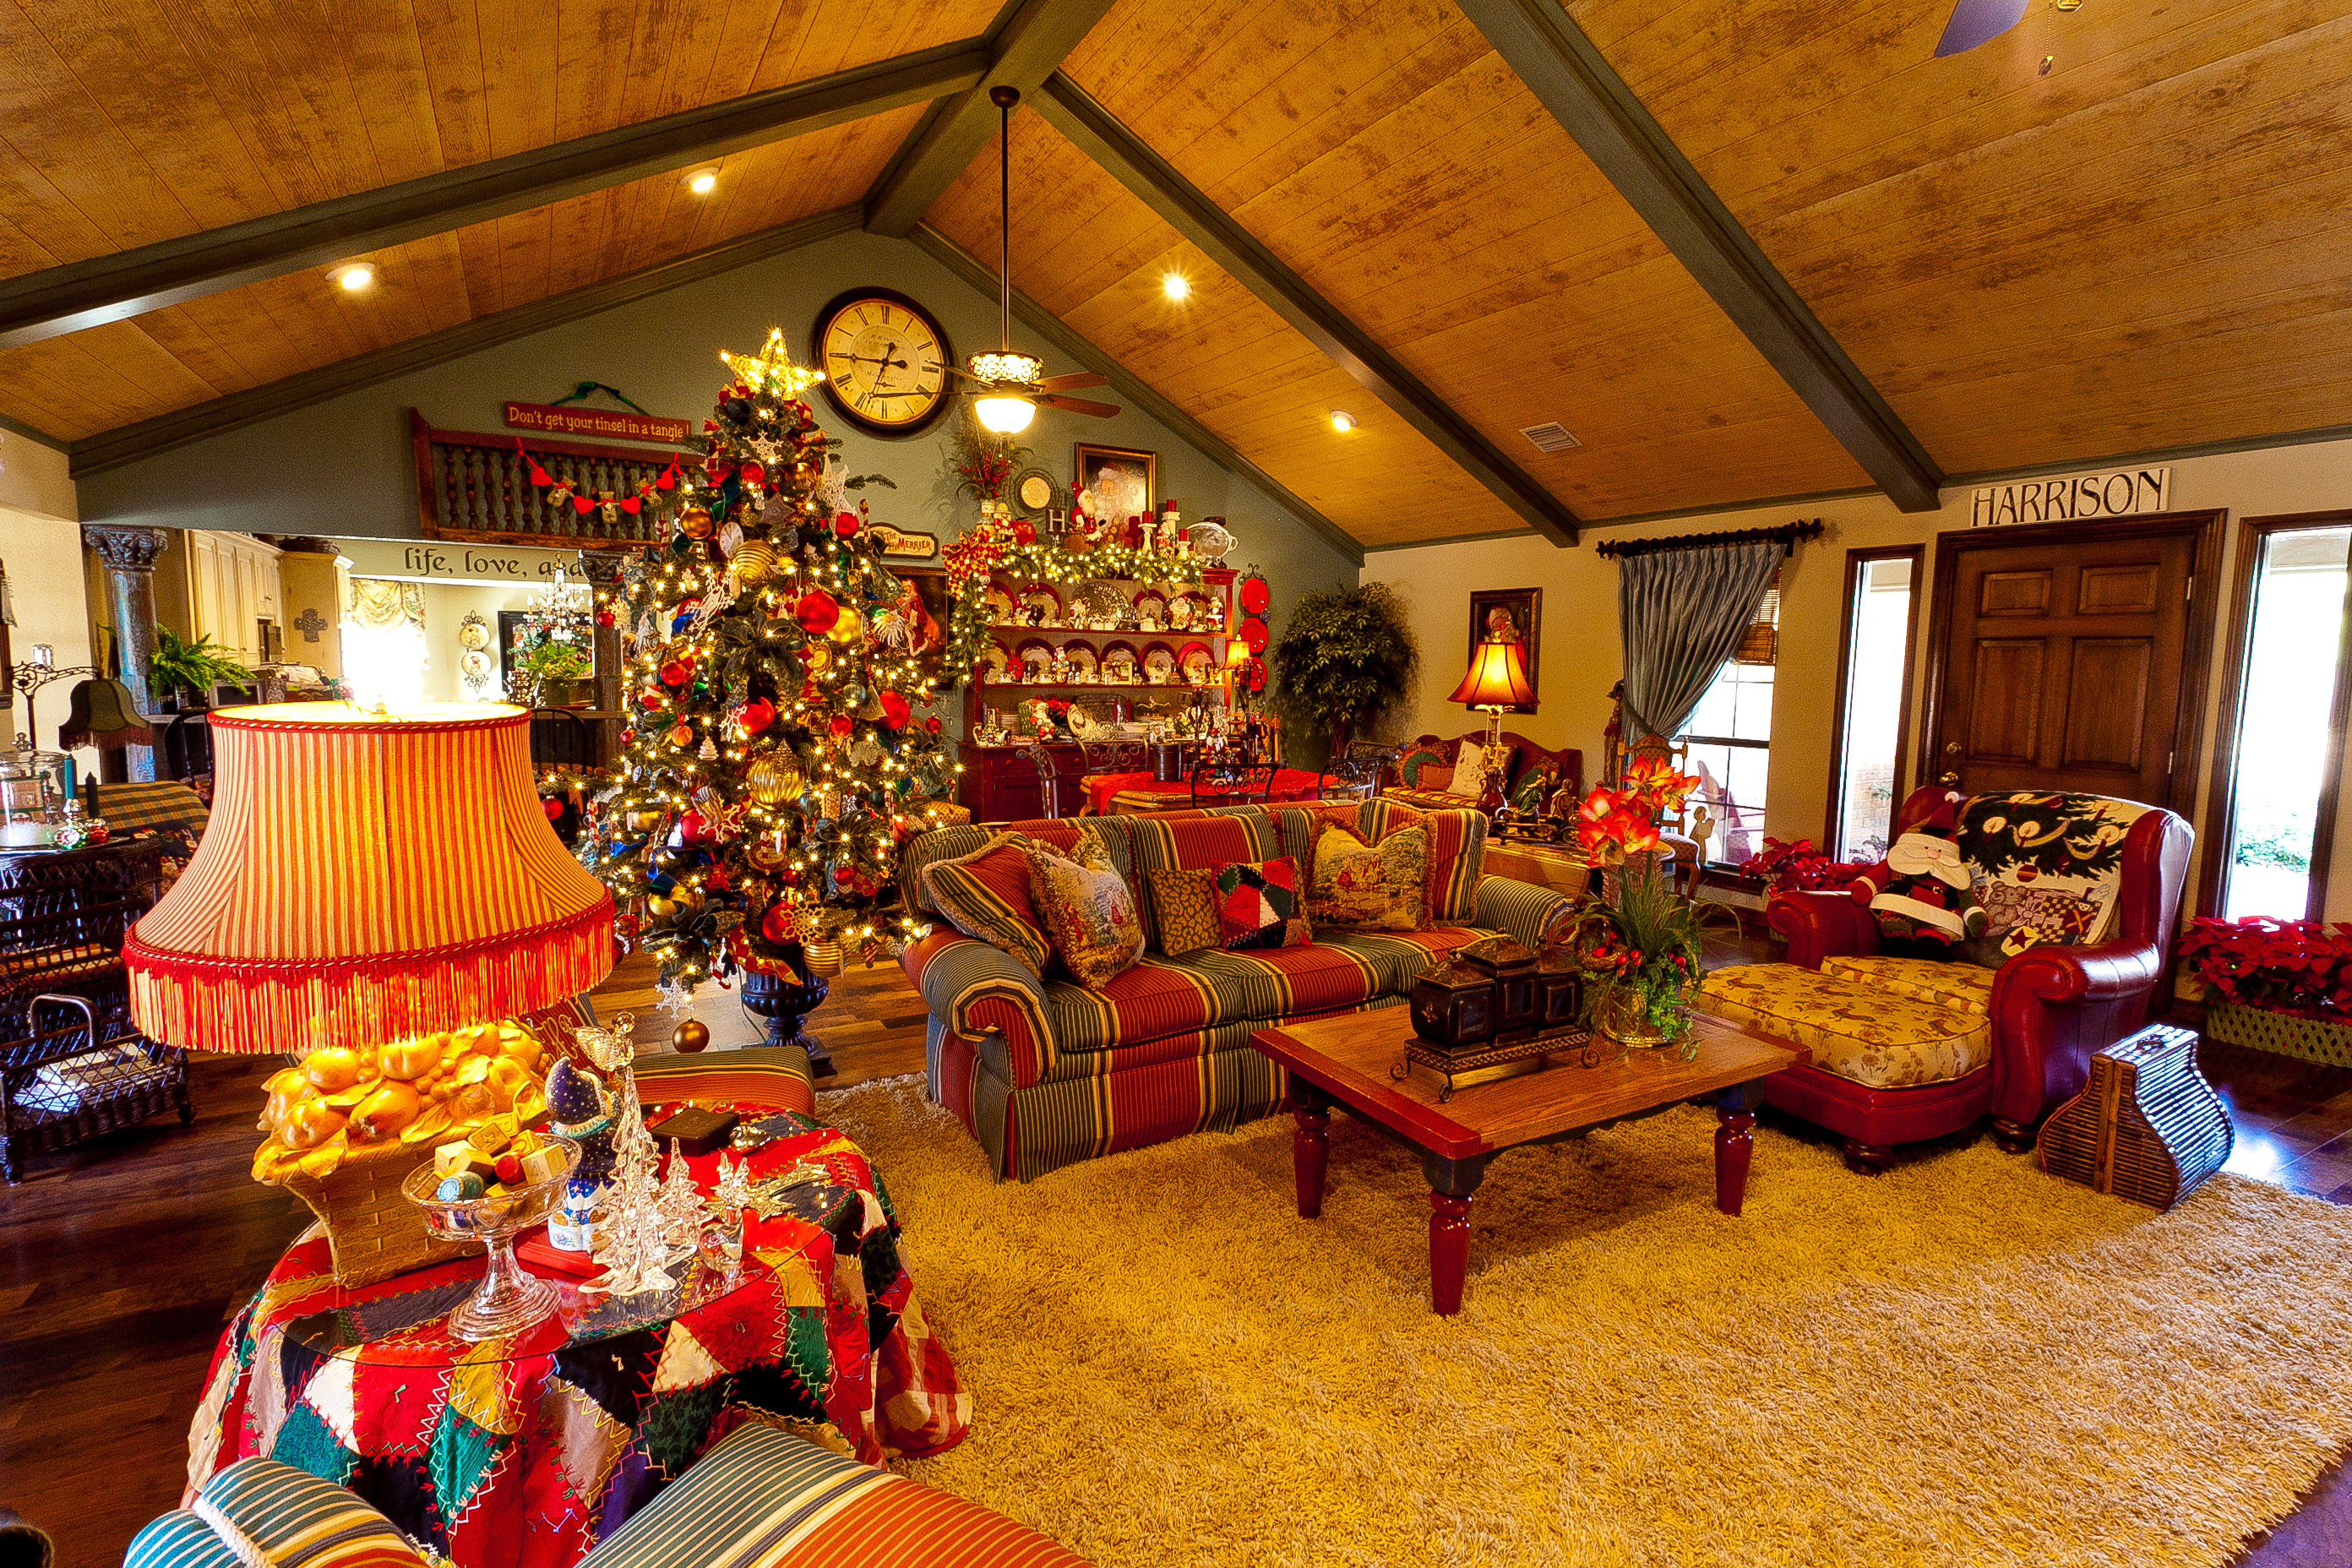 Xmas Home Decoration: Show Me A Country French Home Dressed For Christmas